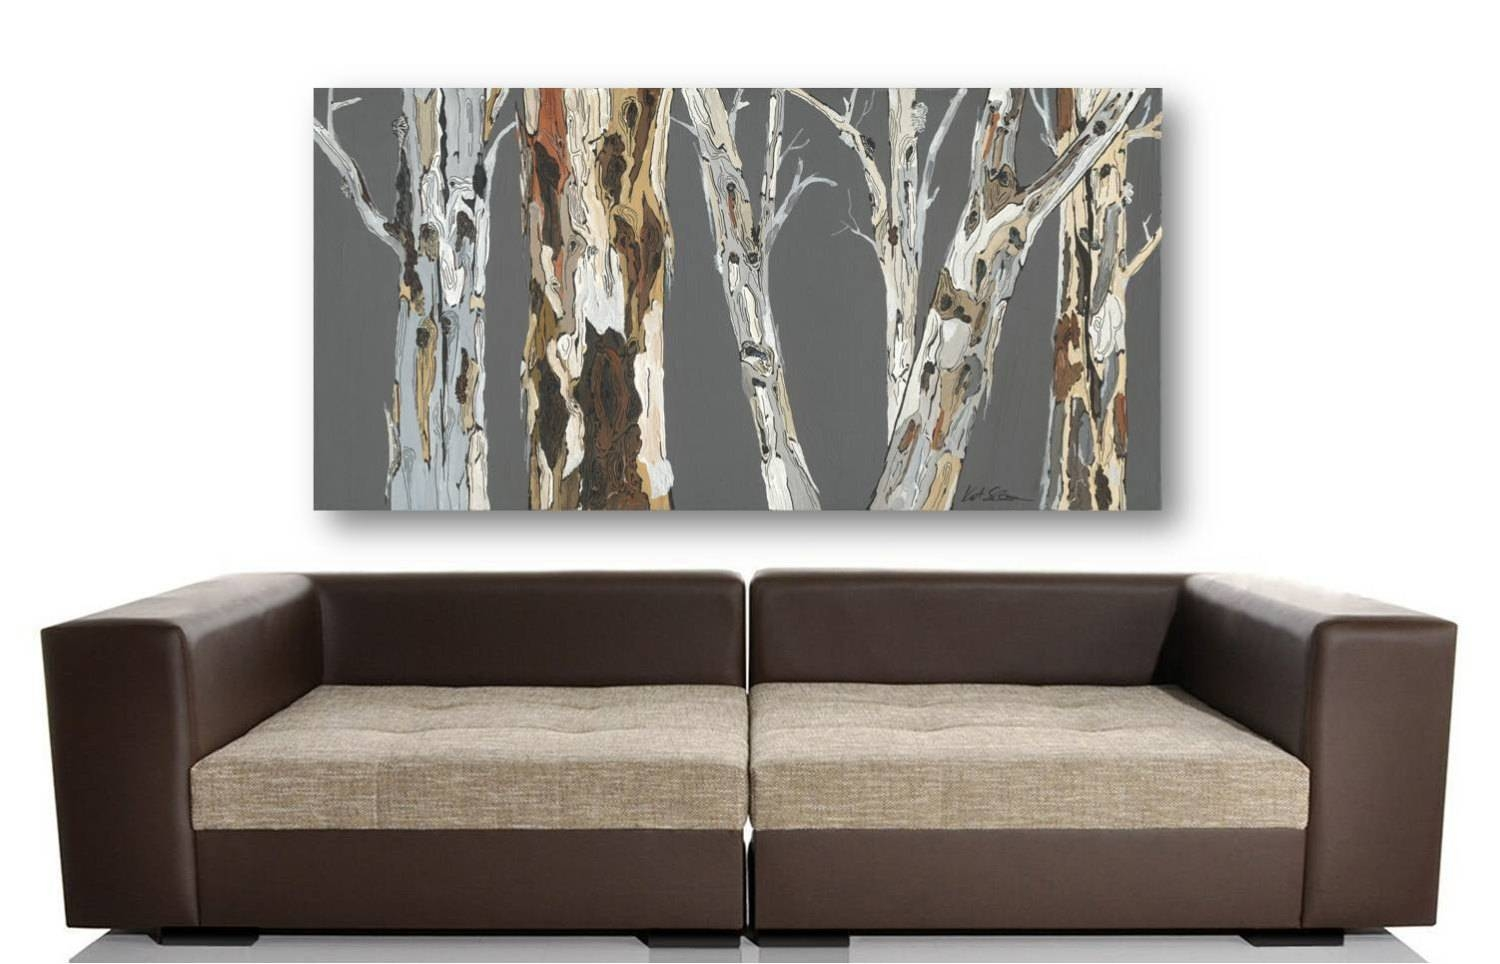 Wall Art: Breathtaking Images Of Large Horizontal Wall Art For Most Up To Date Large Horizontal Wall Art (View 15 of 20)